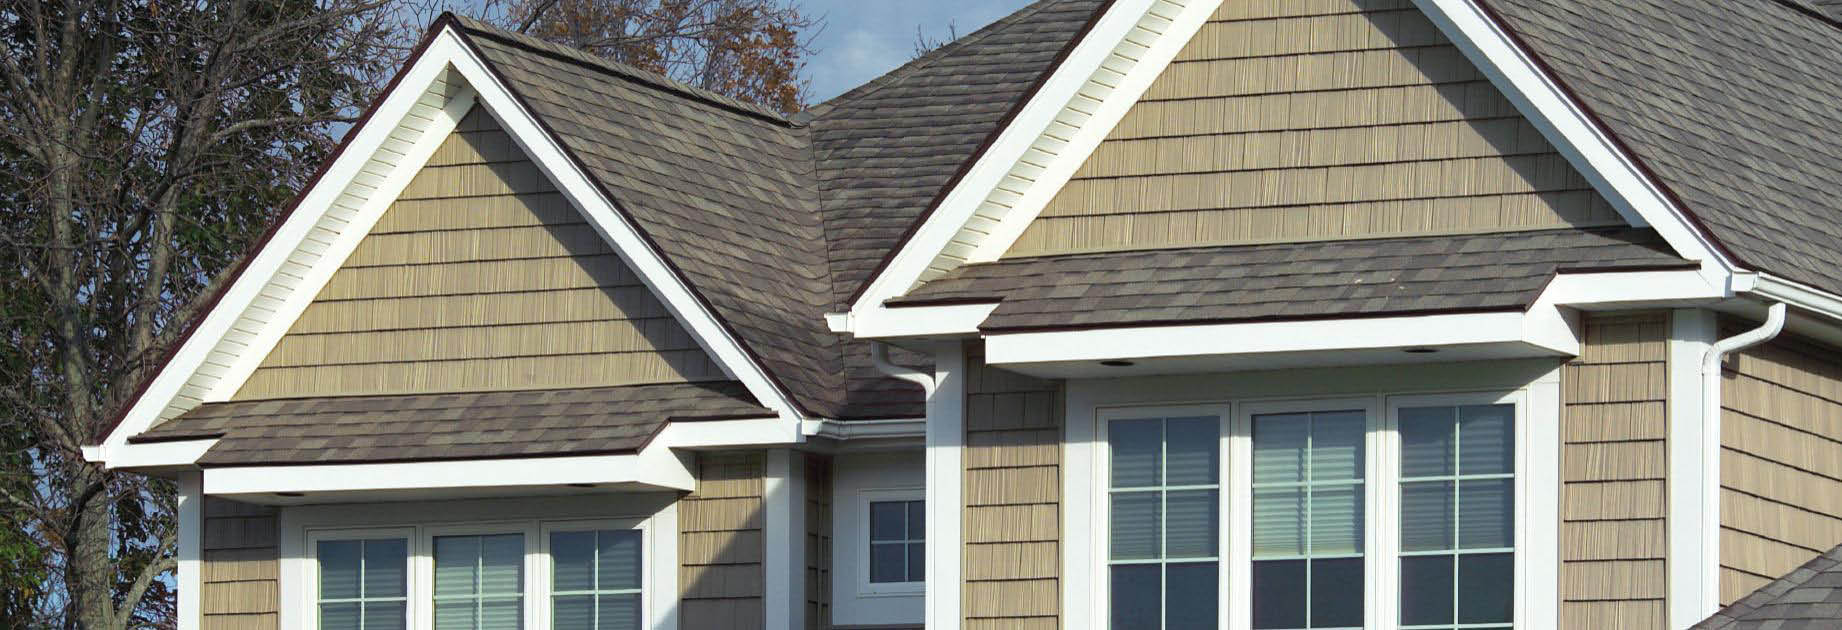 Exterior home showing roofing, siding and shingles banner